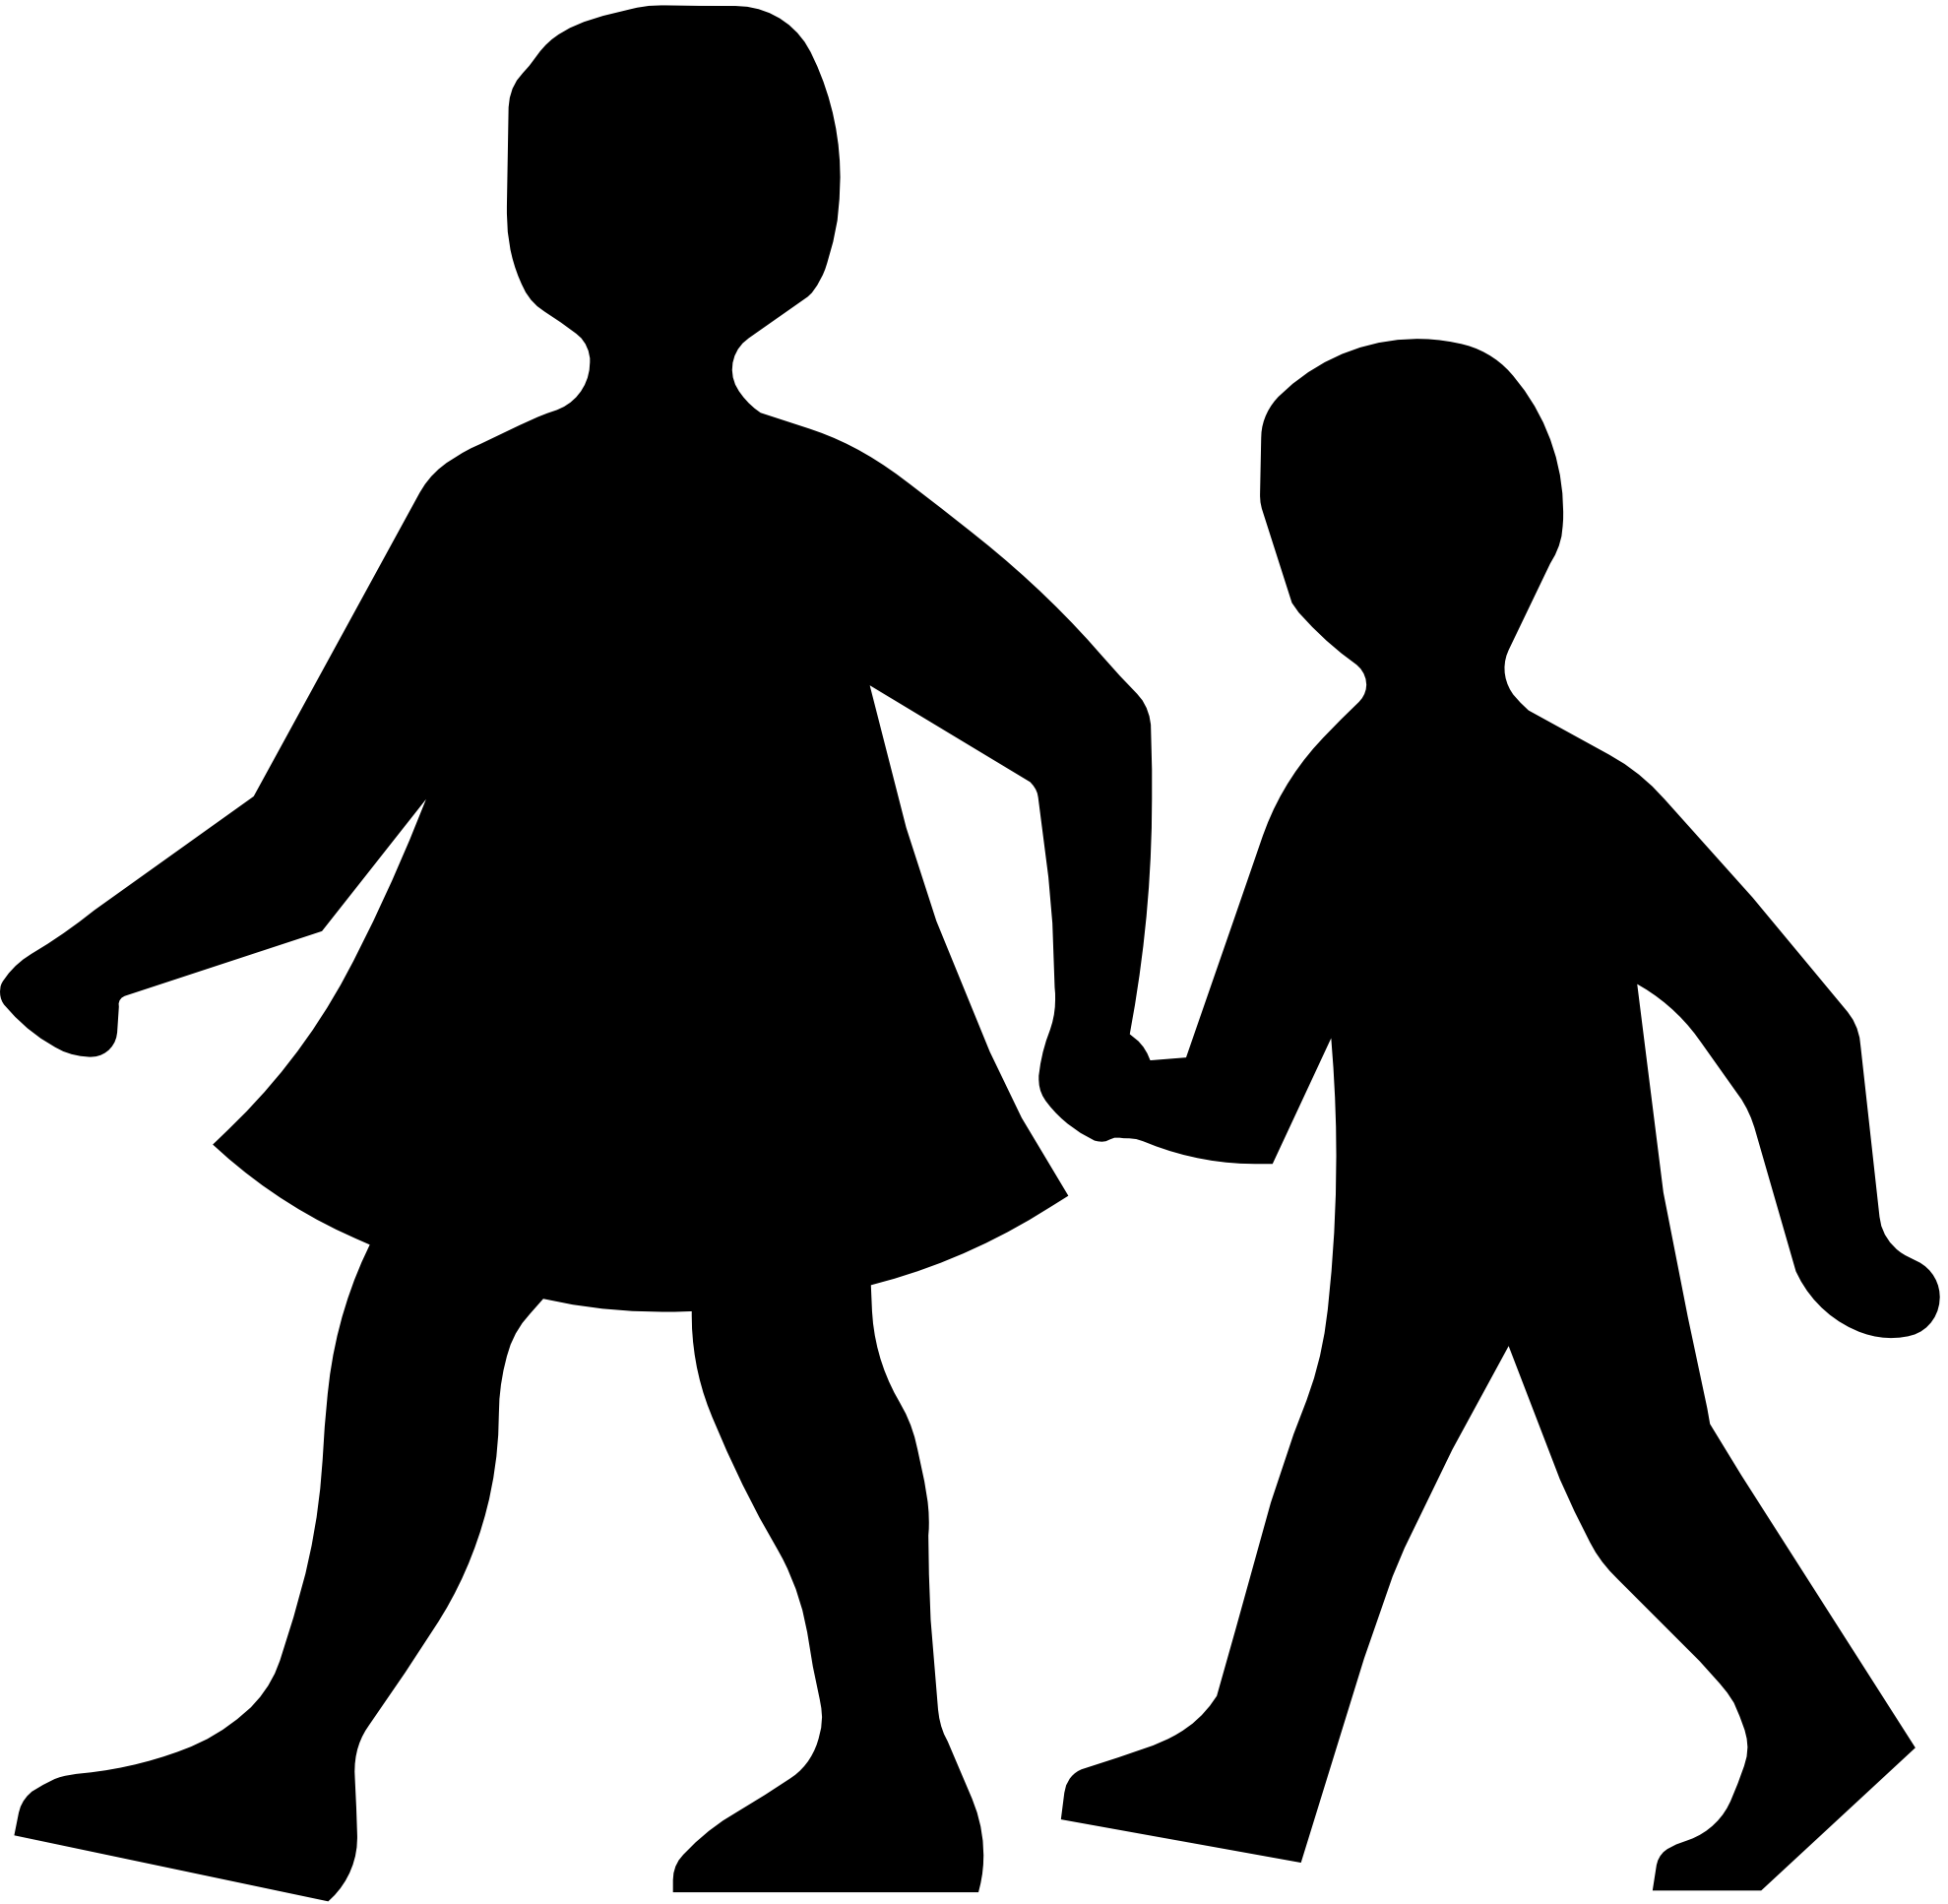 Of kids playing at. Clipart child silhouette